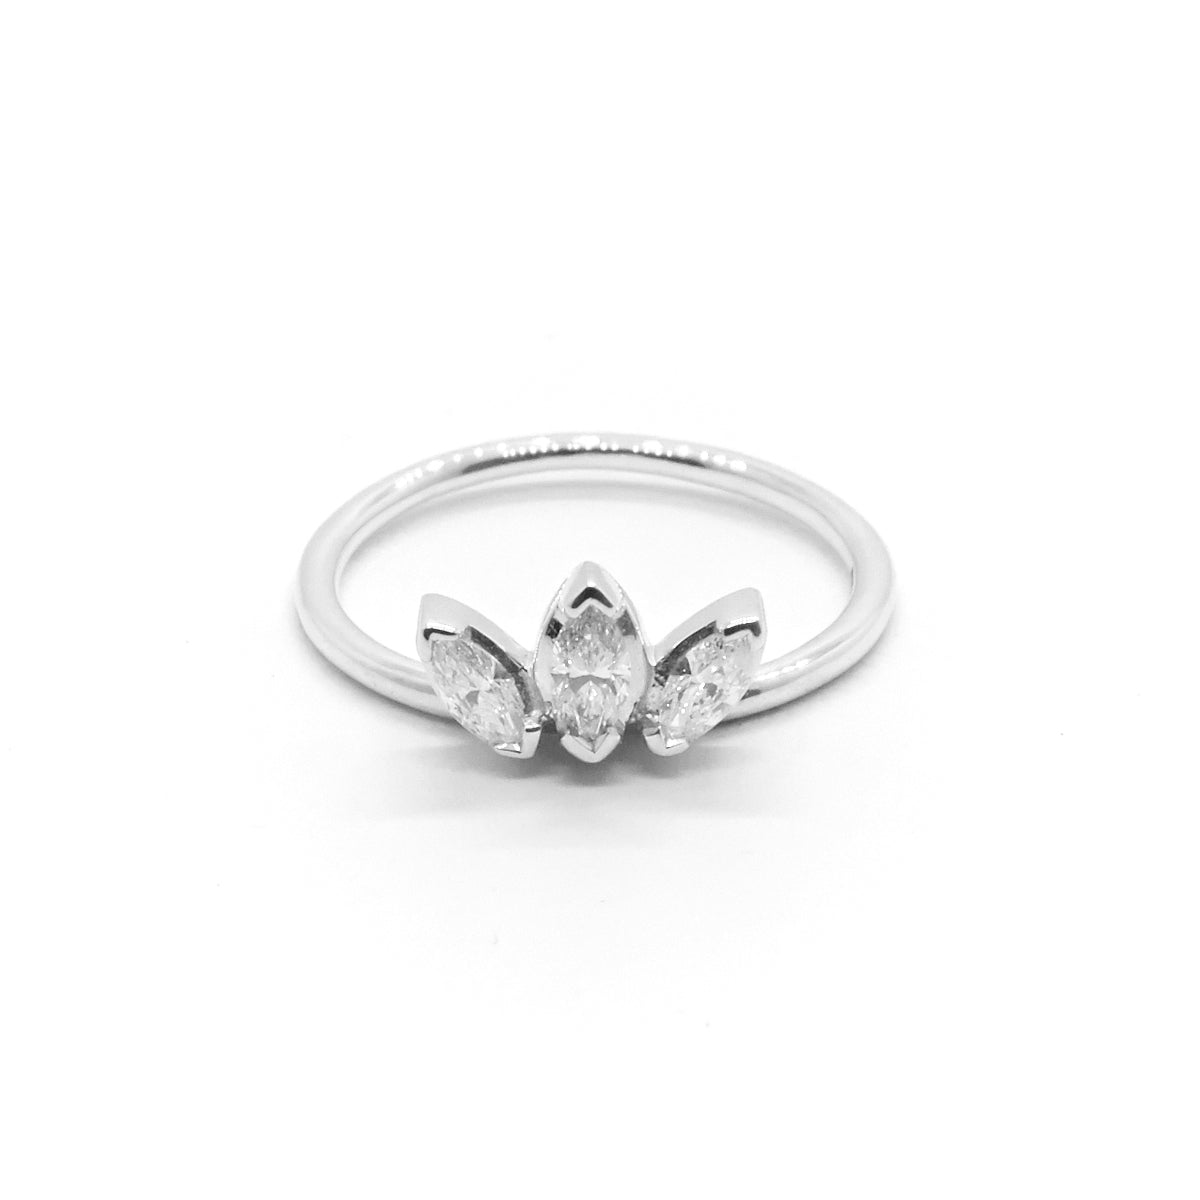 marie sun diamond jewellery sunring ring products nat wg natalie three stone